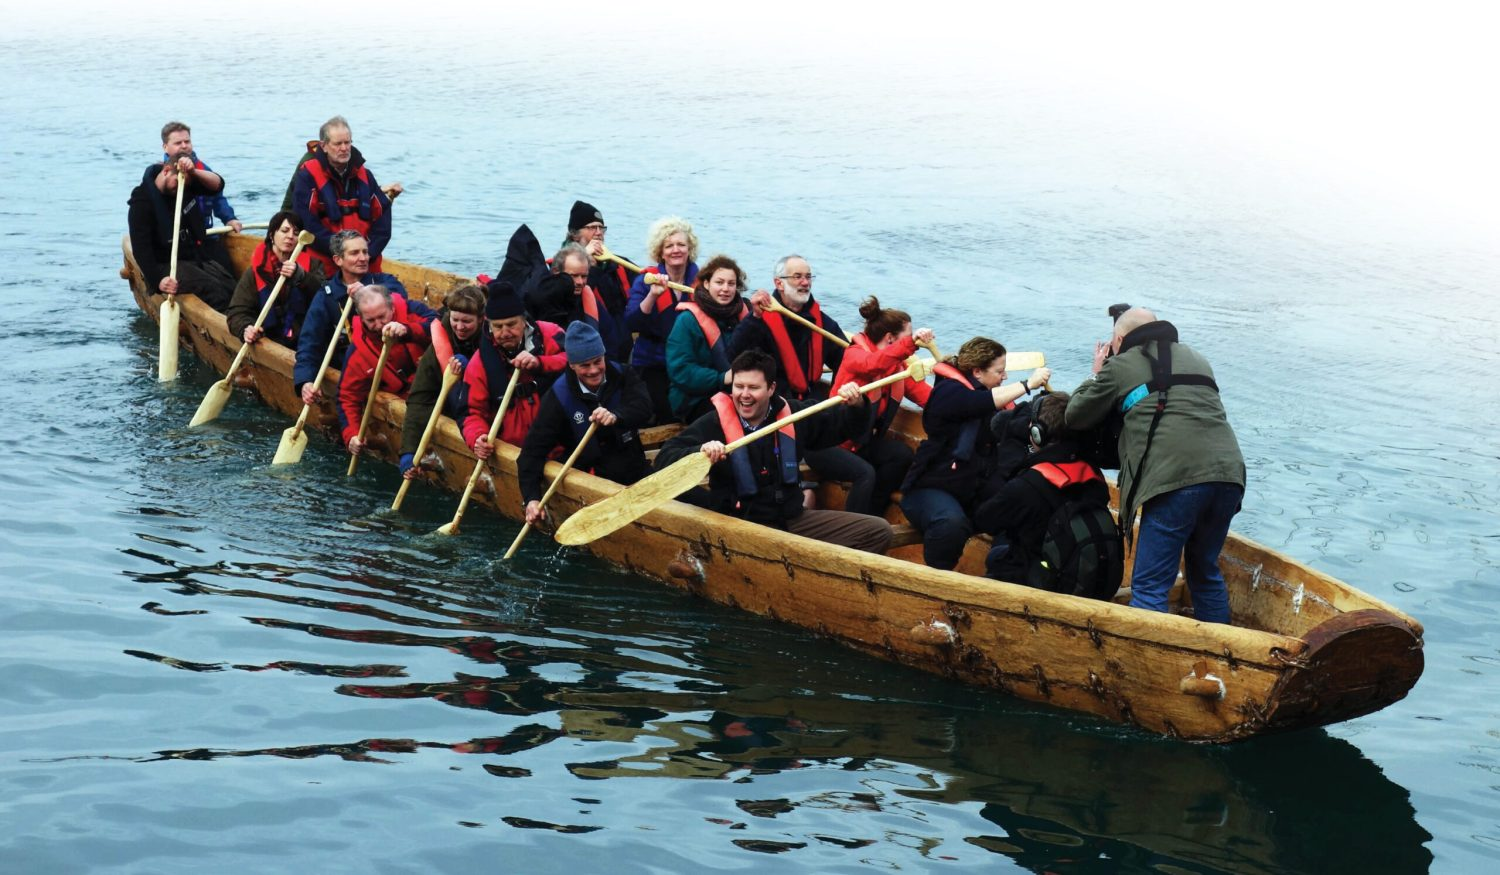 BeLOW Morgawr, a full-scale reconstruction of the Bronze Age boat 'Ferriby 1', makes her maiden voyage in Falmouth Harbour.